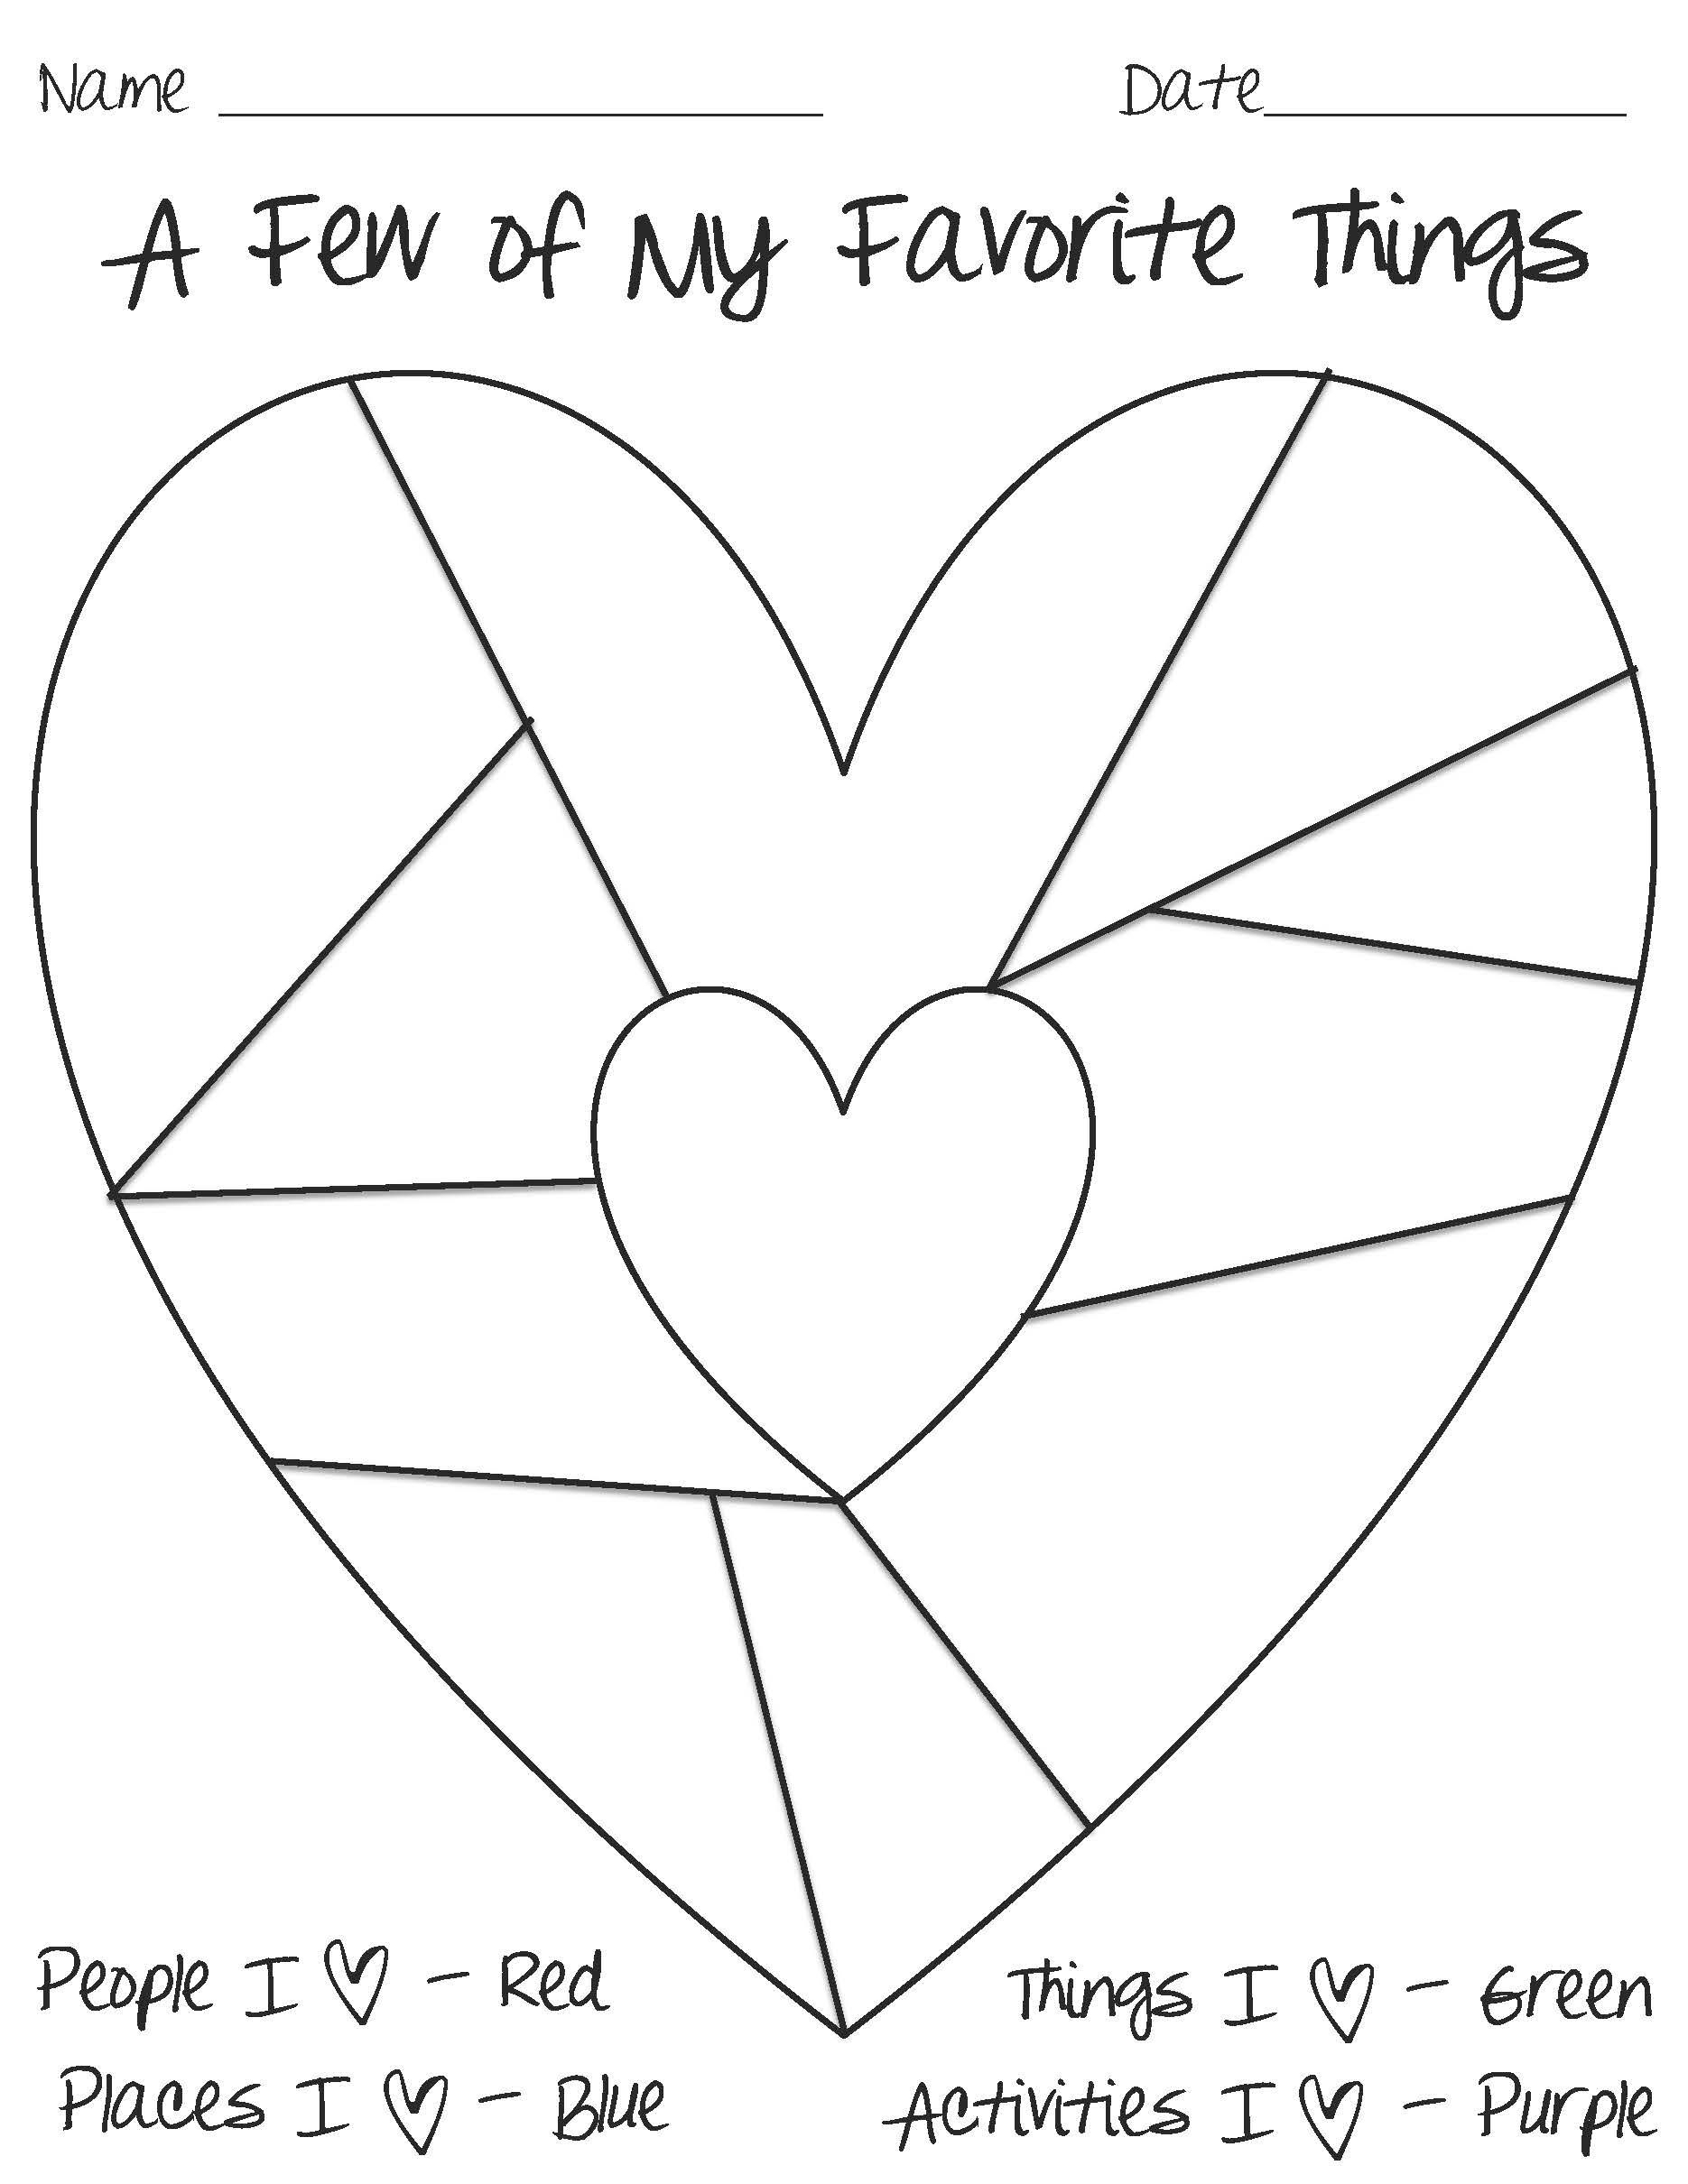 Heart Map Template | Good Resources And Ideas For Teachers throughout A Few Of My Favorite Things Template